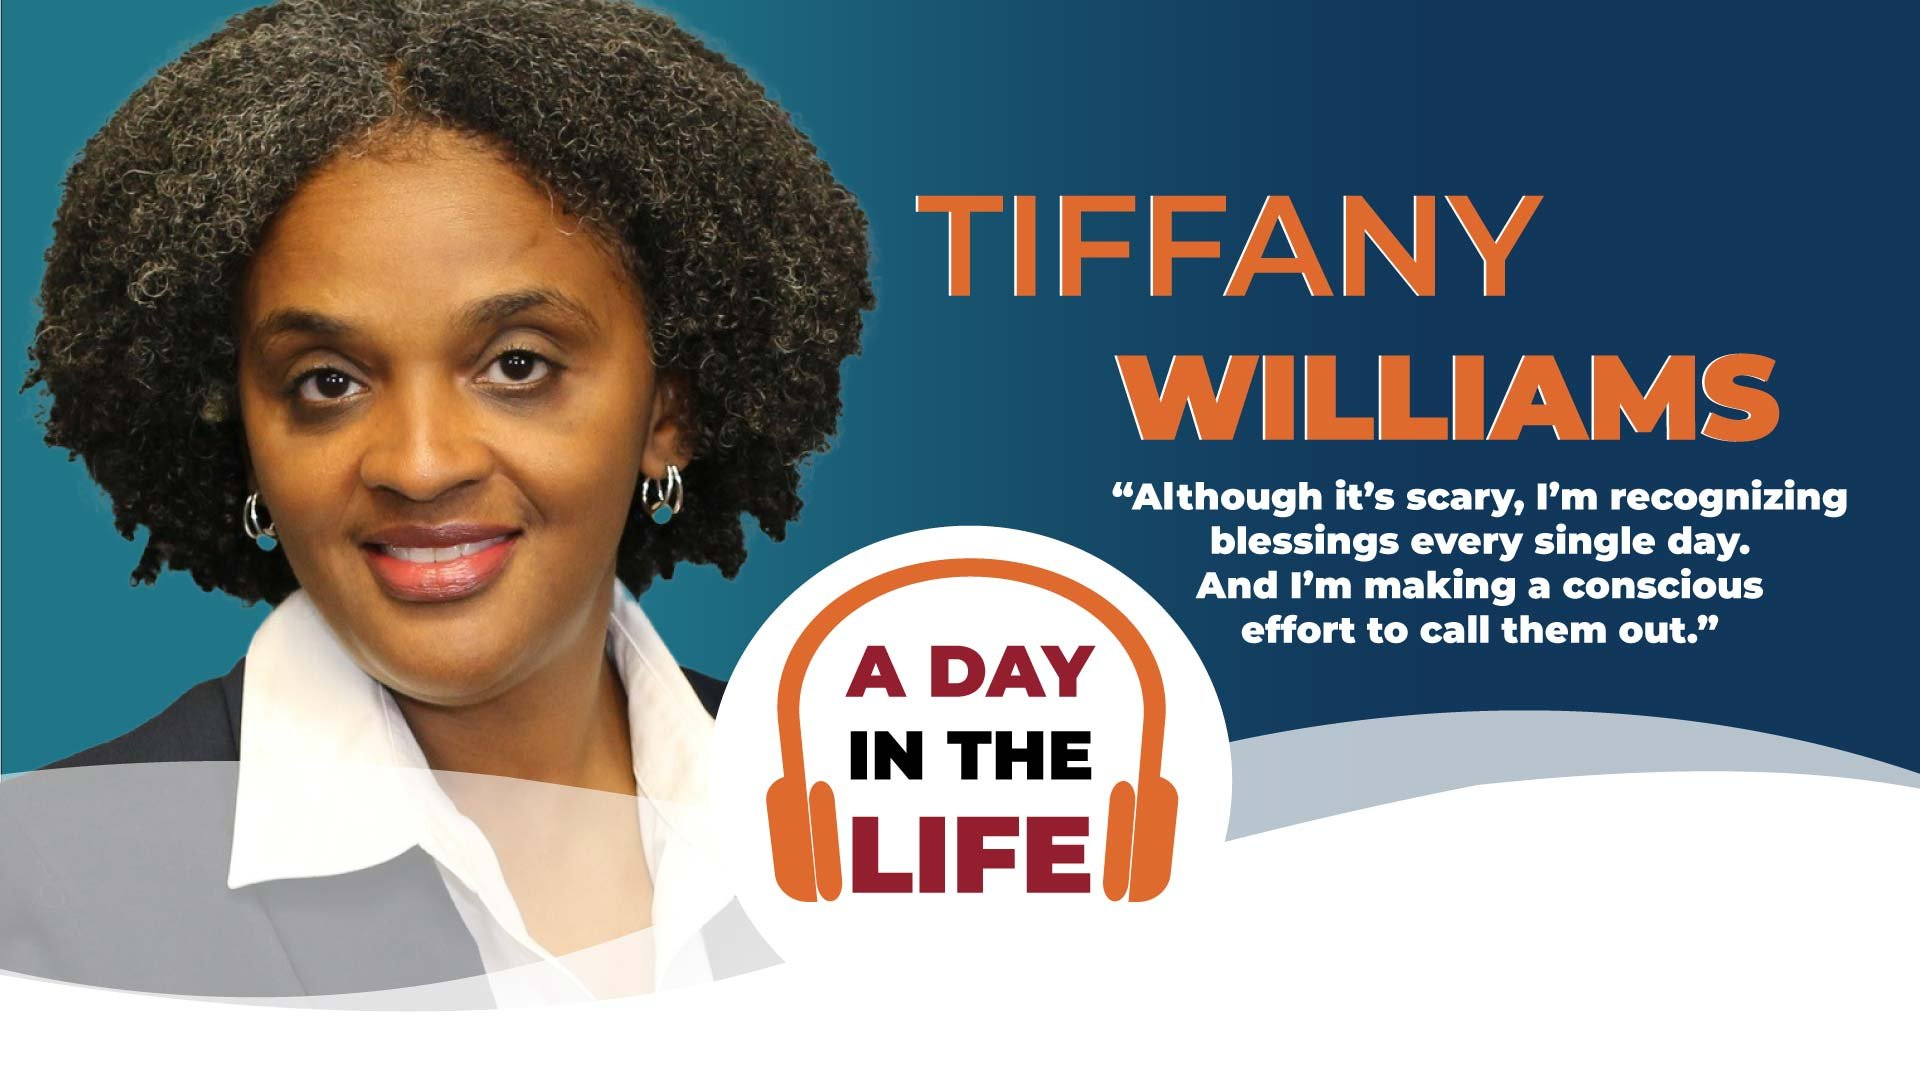 A Day in The life Tiffany Williams header image